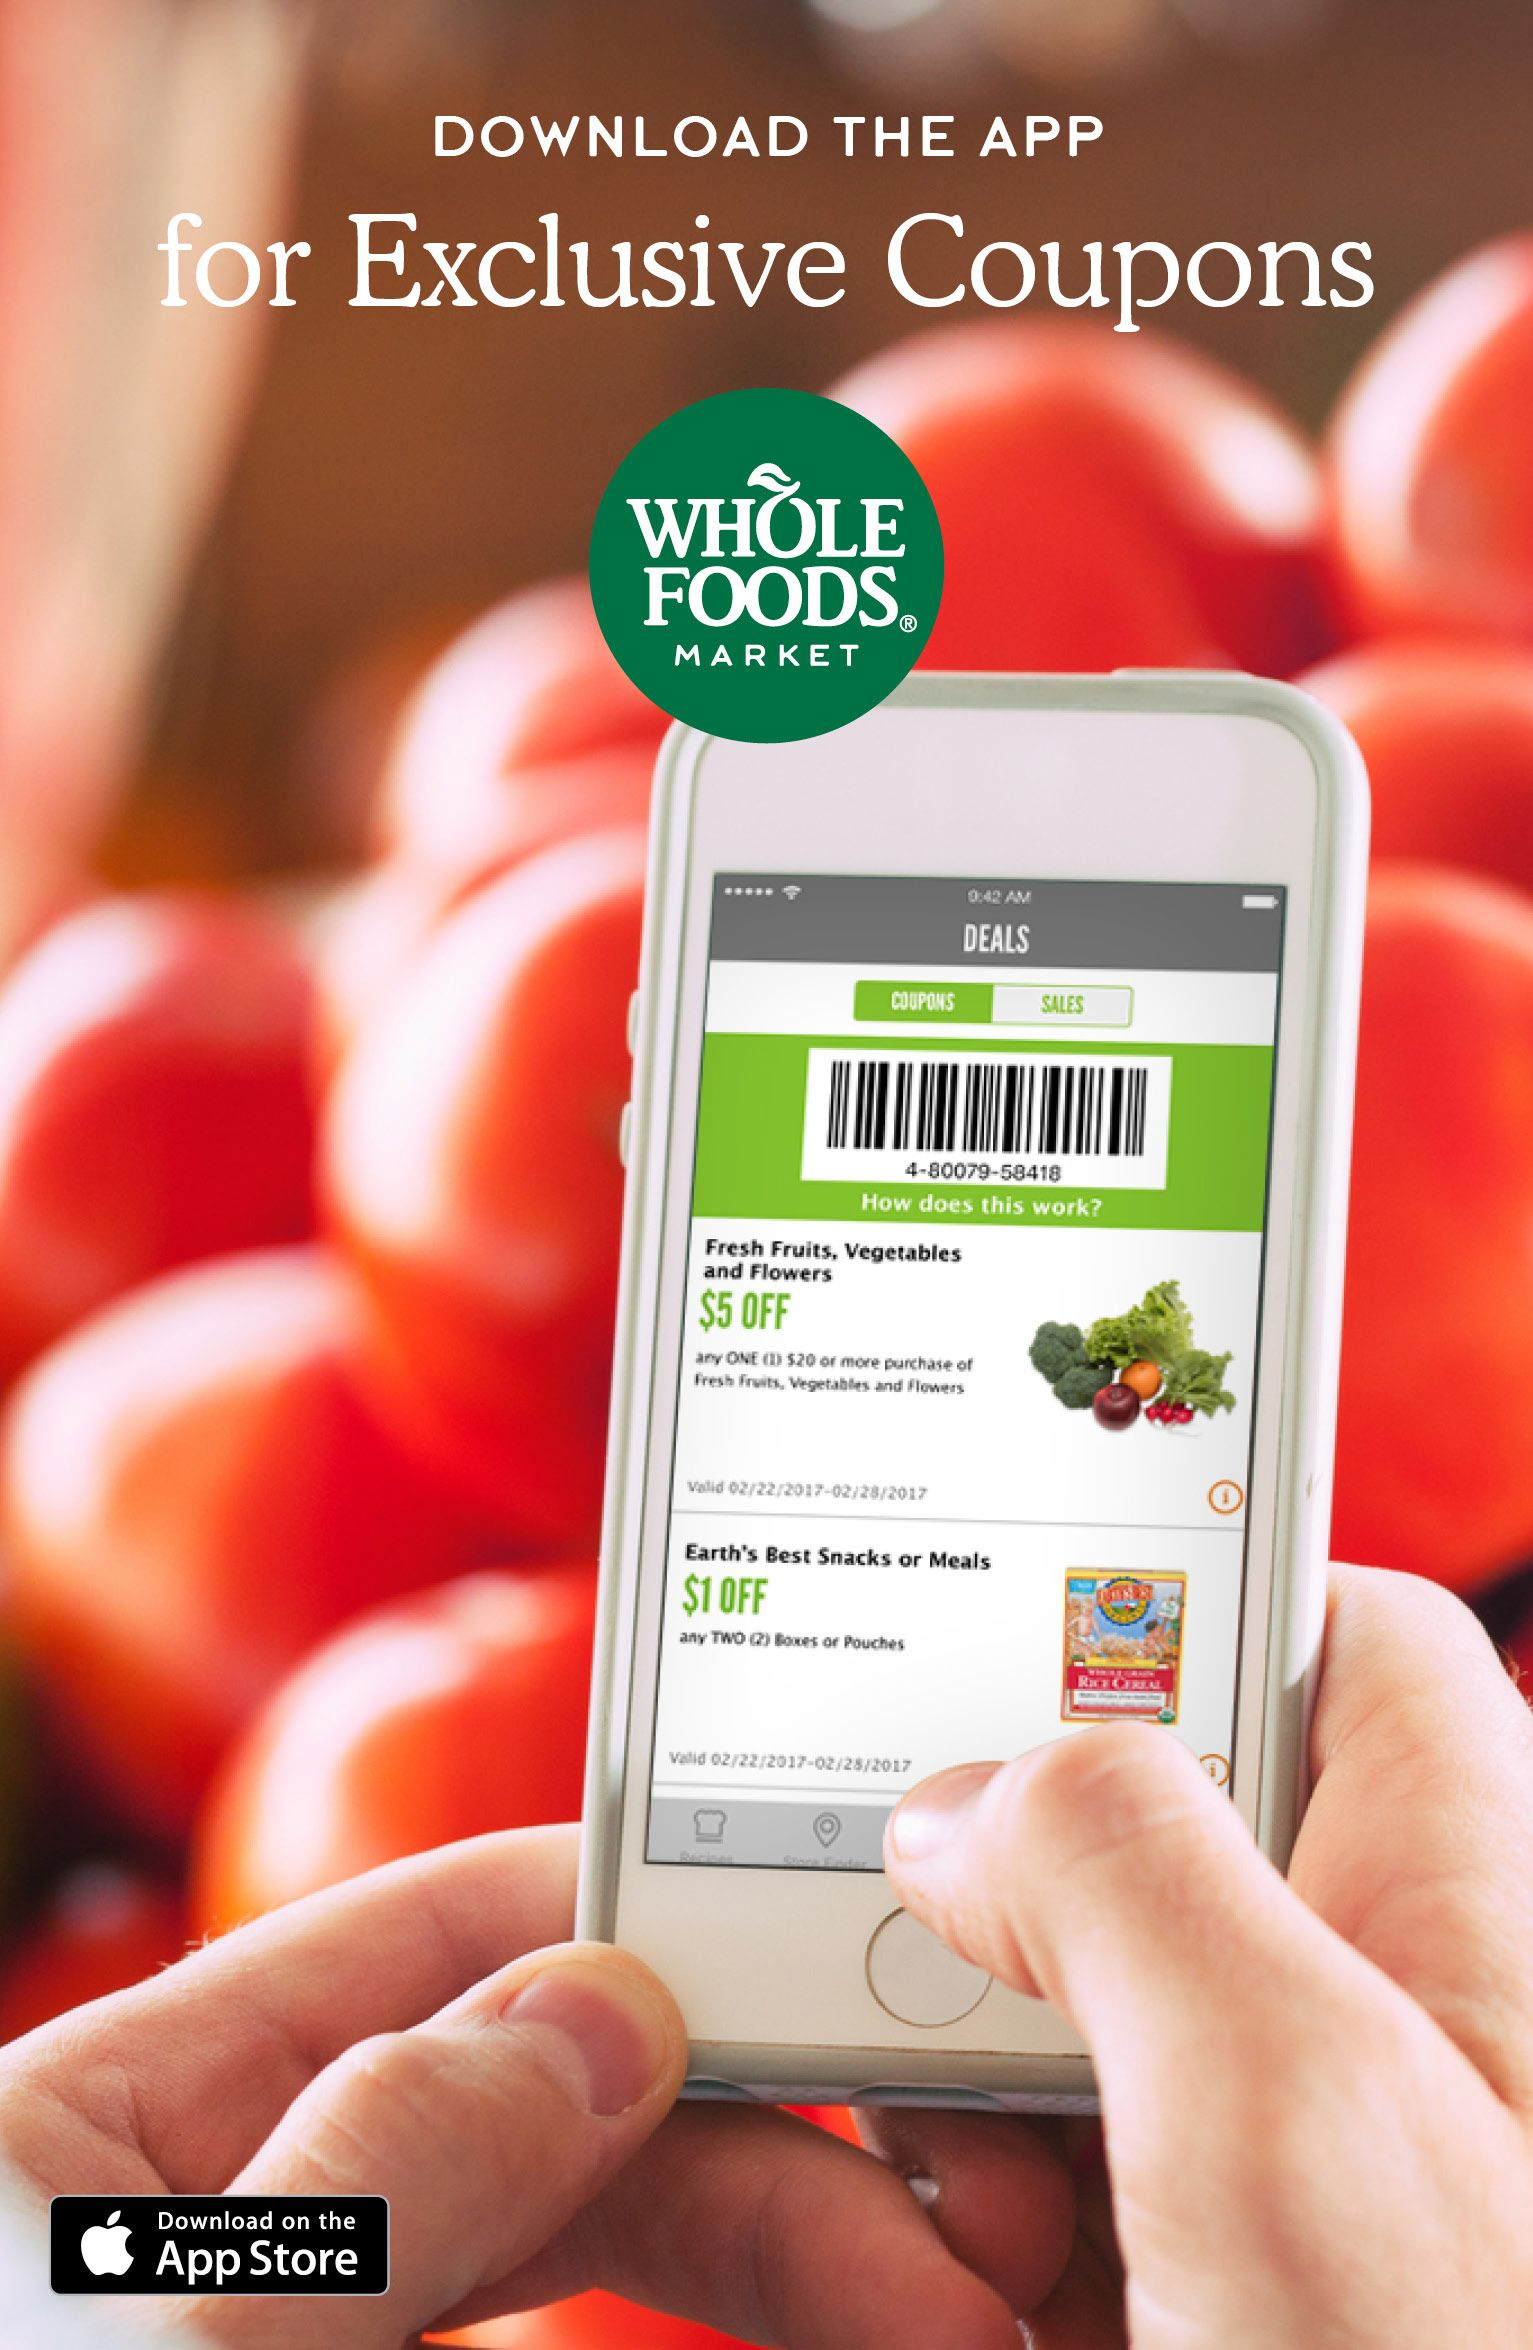 Sign Up And Save With Exclusive Coupons In The Whole Foods Market